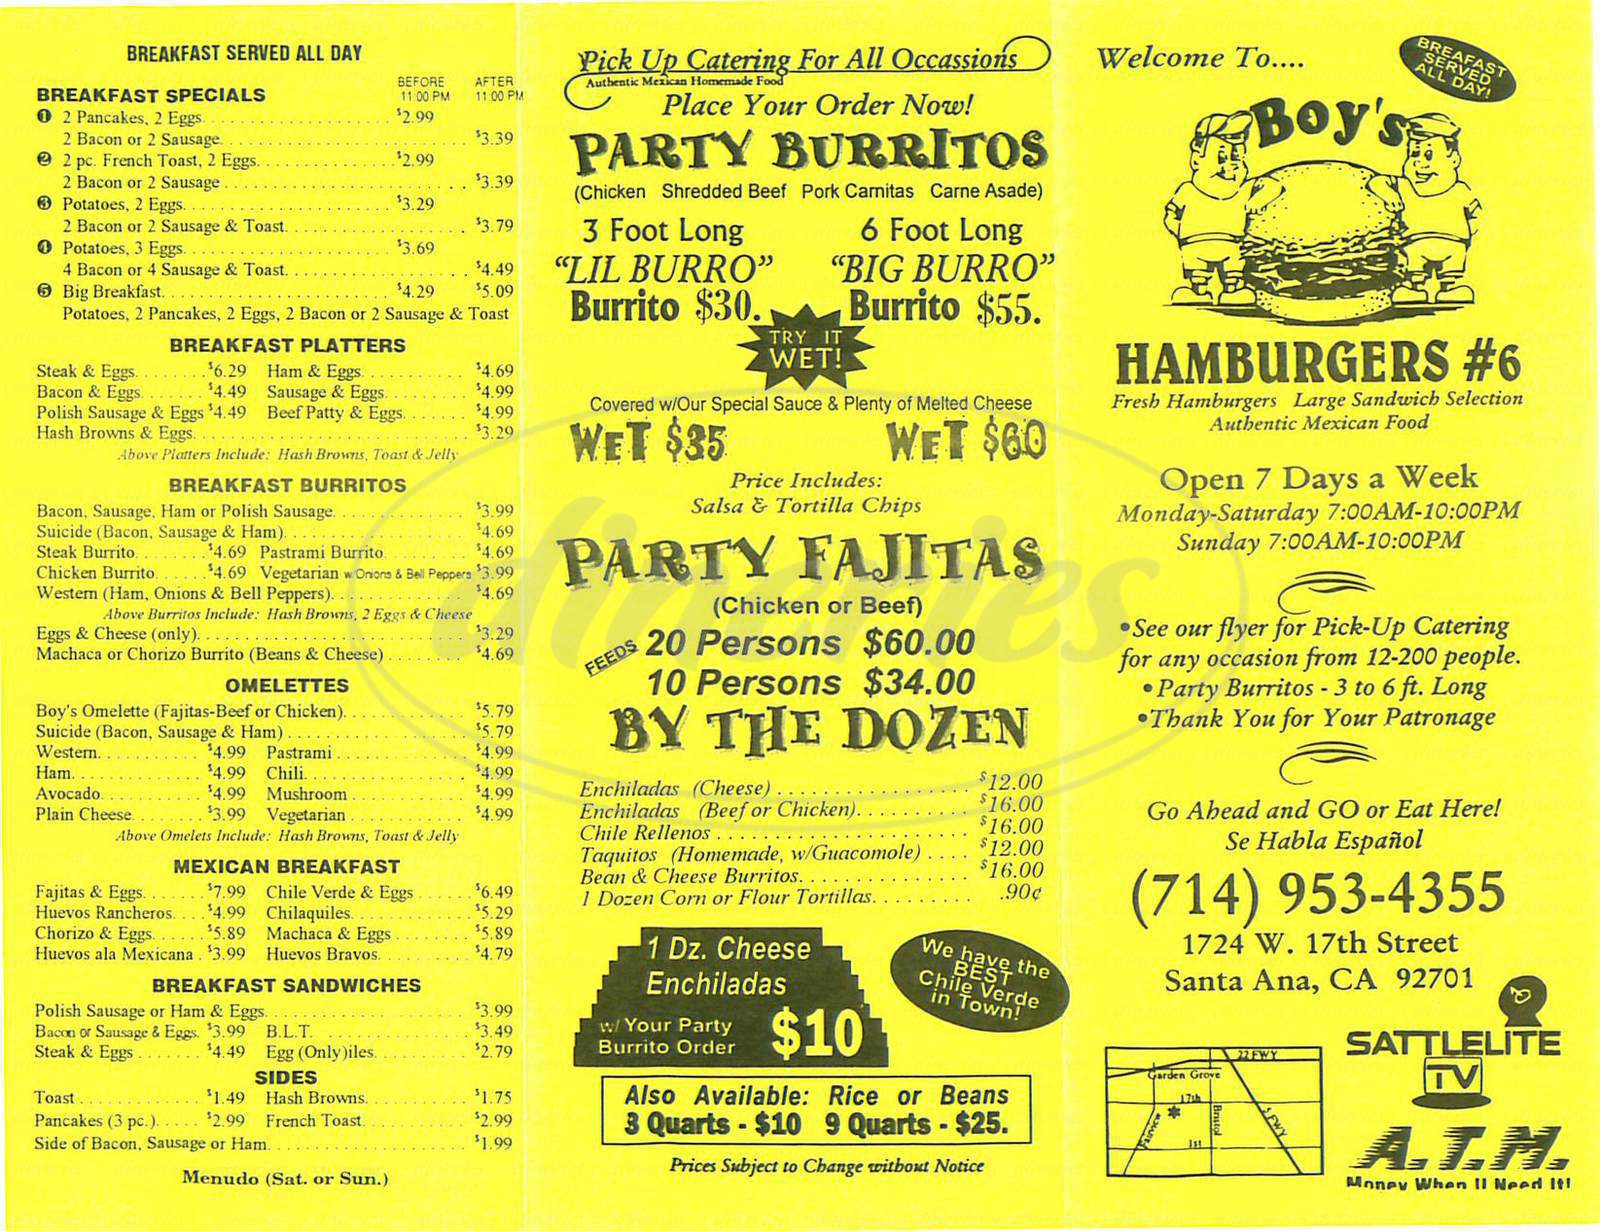 menu for Boys Hamburgers